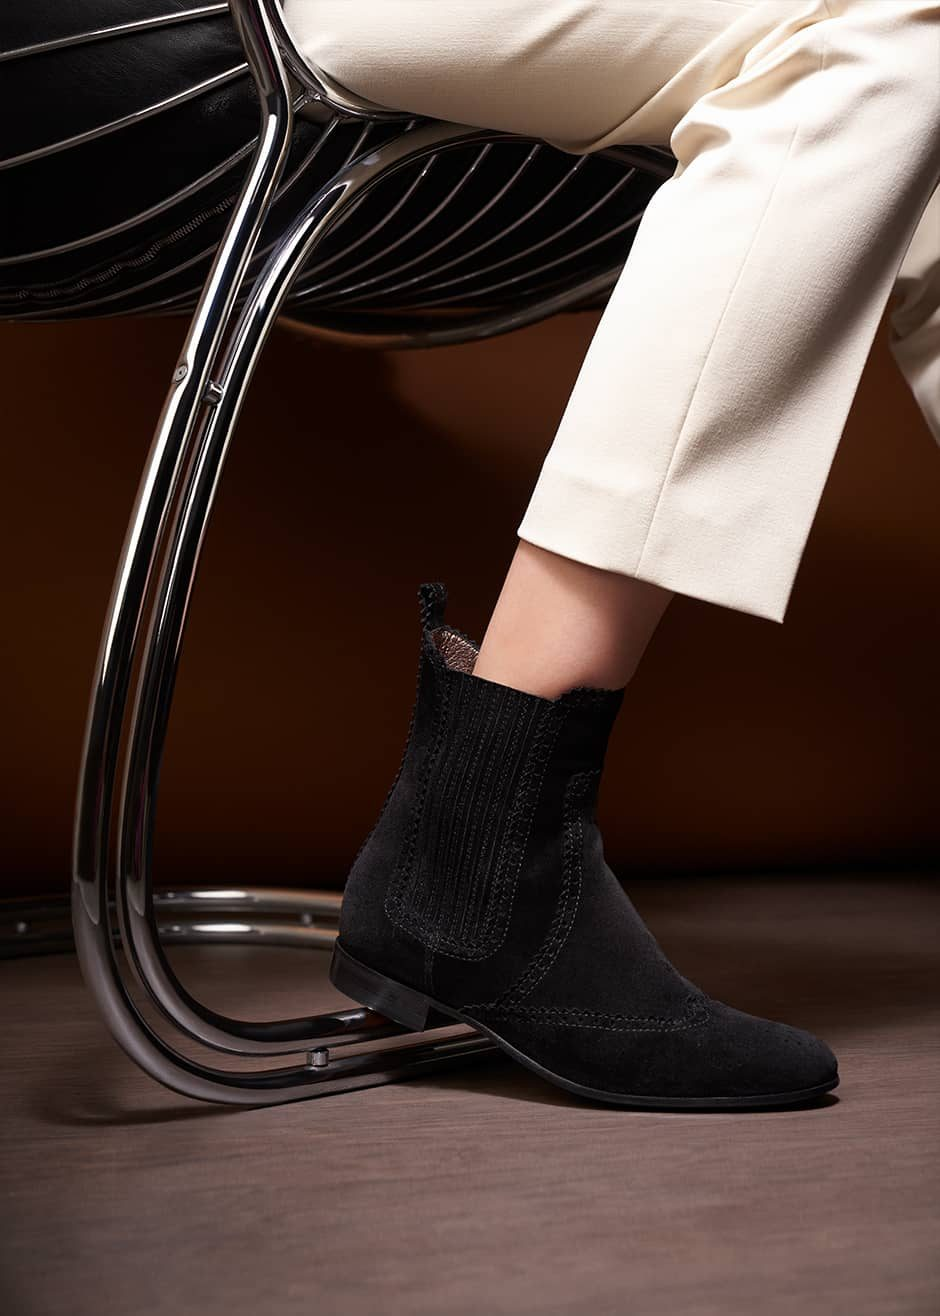 Londra – Chelsea Boots in black suede